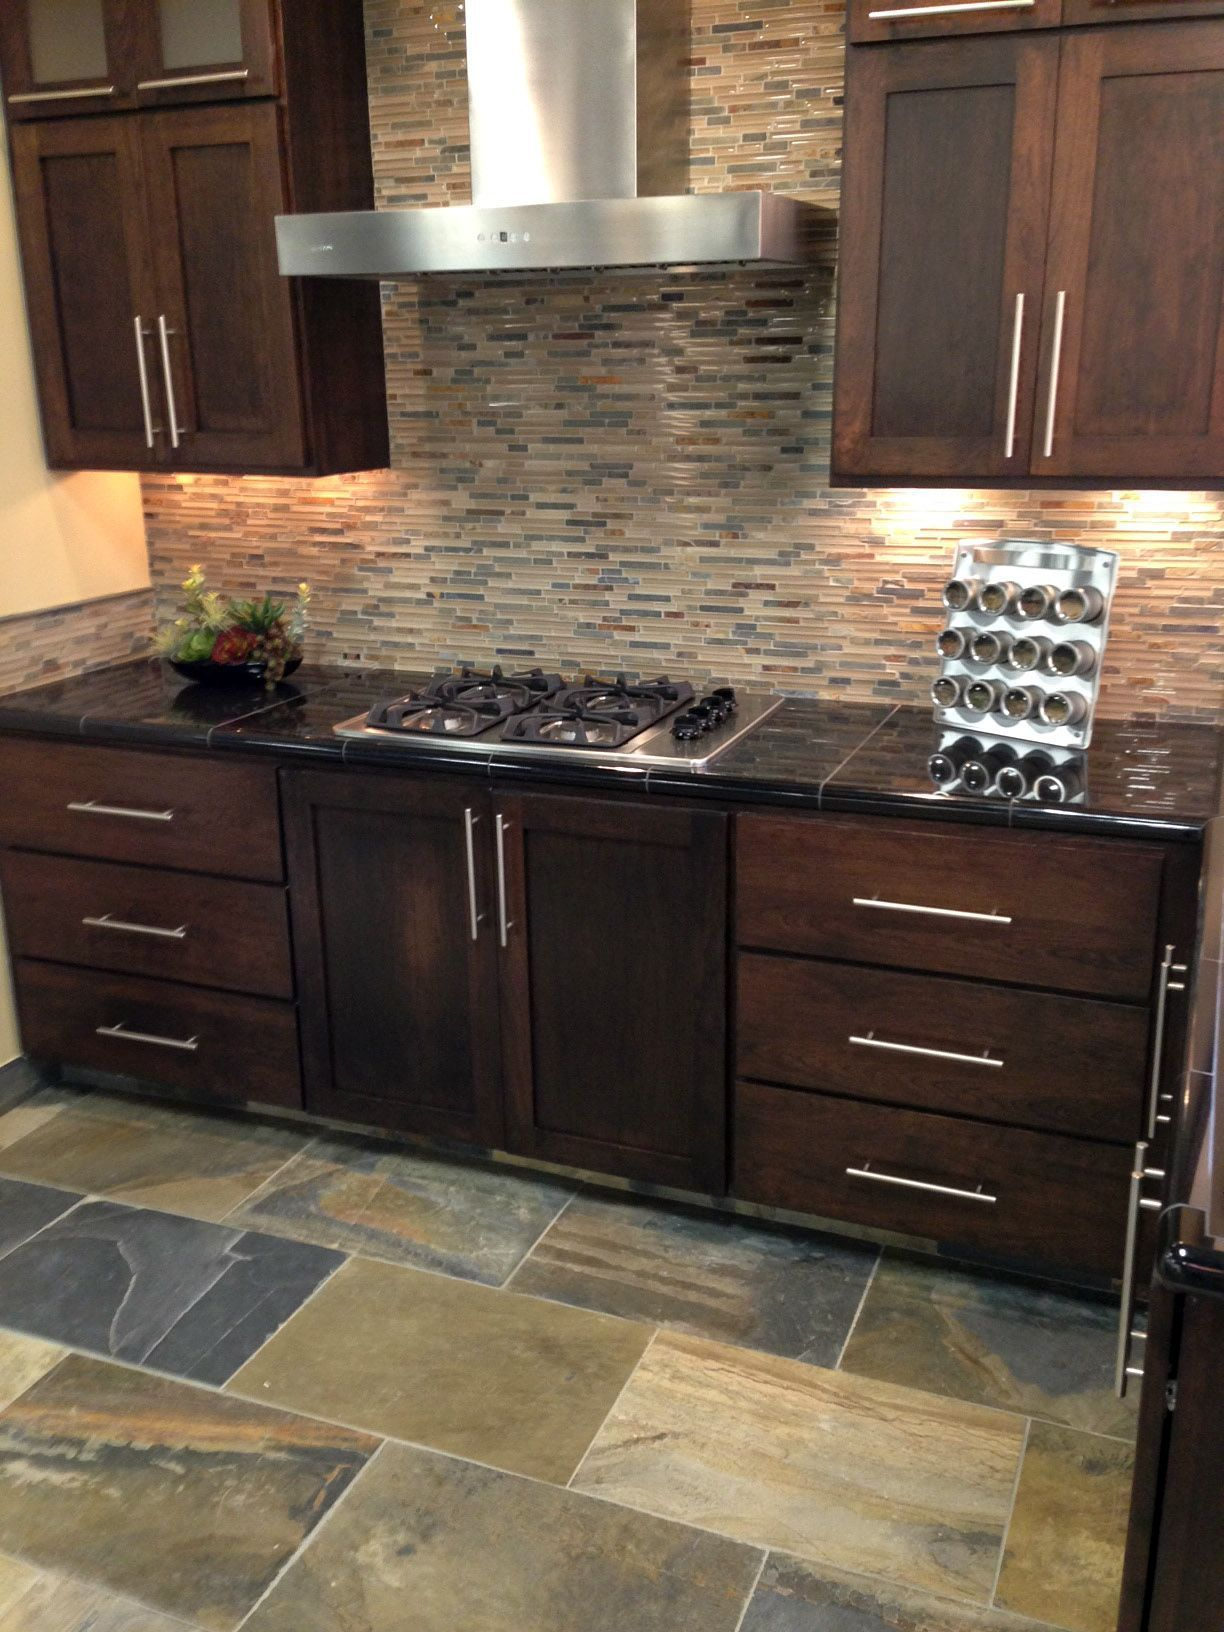 Stone Glass Mixed Mosaic Backsplash With Oversized Slate Tiles For The Floor Kitchen Design Kitchen Renovation Kitchen Flooring